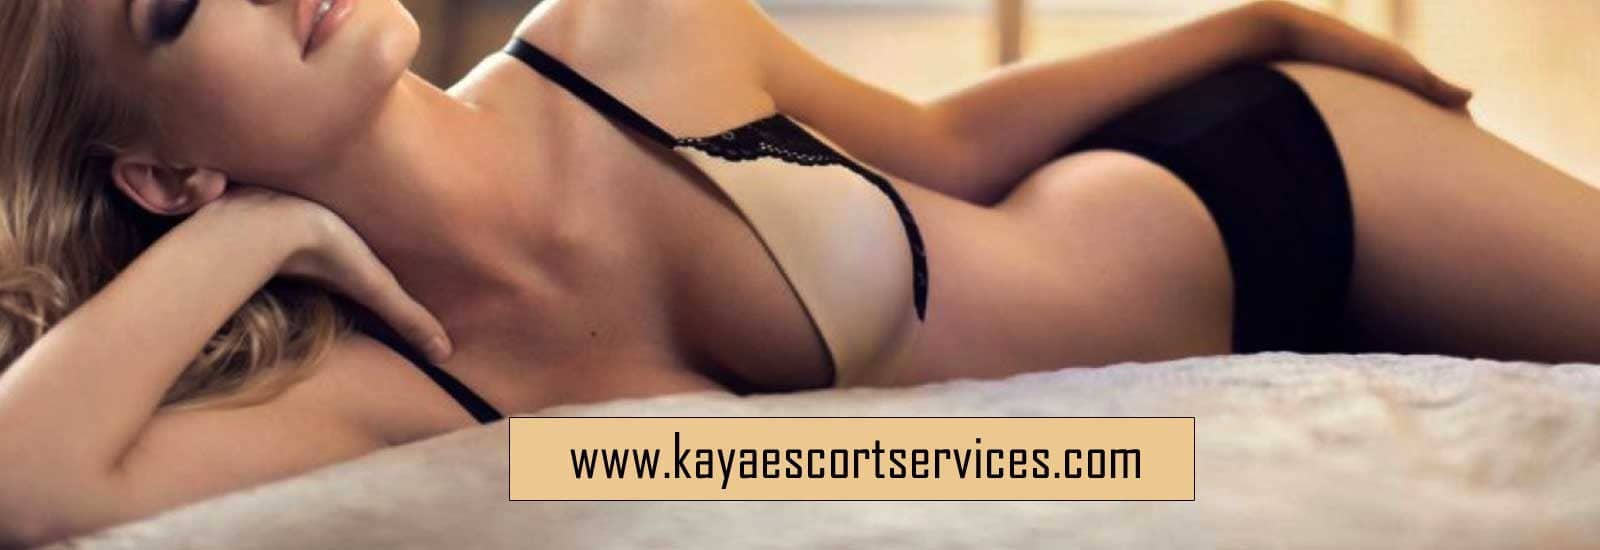 Call Girls Services Manali